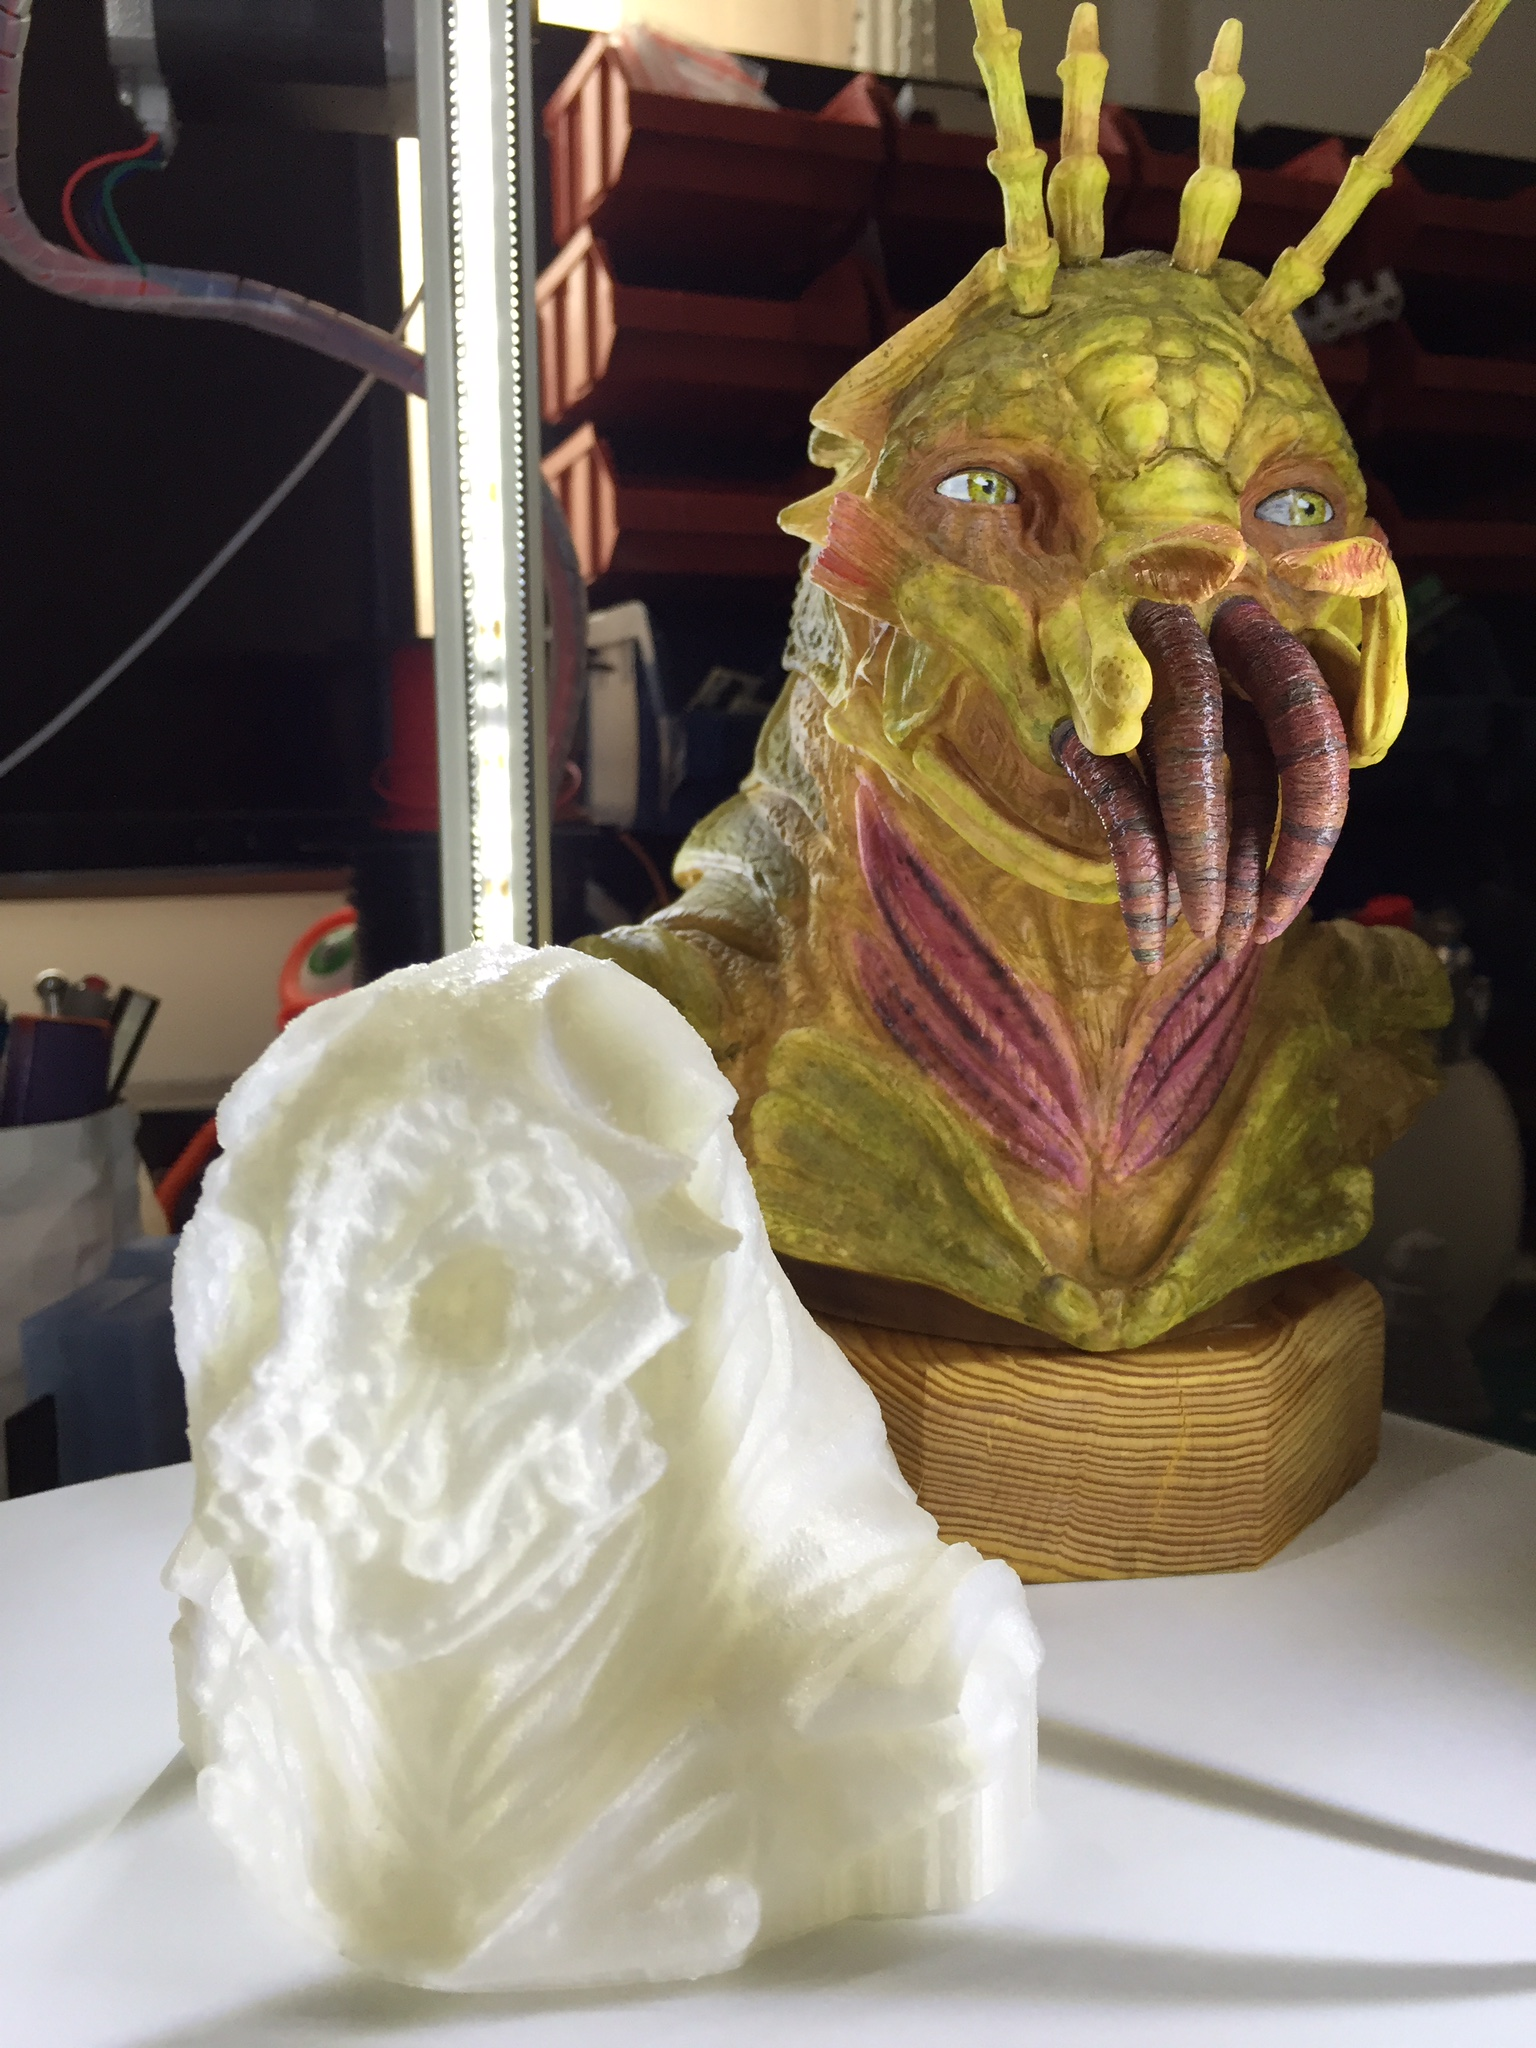 Clay Marquette modeling inspired by the film District 9 by my brother - Andrew Lee   https://www.facebook.com/pages/Art-of-Lee    This copy was scanned using Autodesk's 123d Catch and 3D printed on a Rep-Rap Kossel. 0.1mm layer height (100 micron). Total print time 9.5hrs